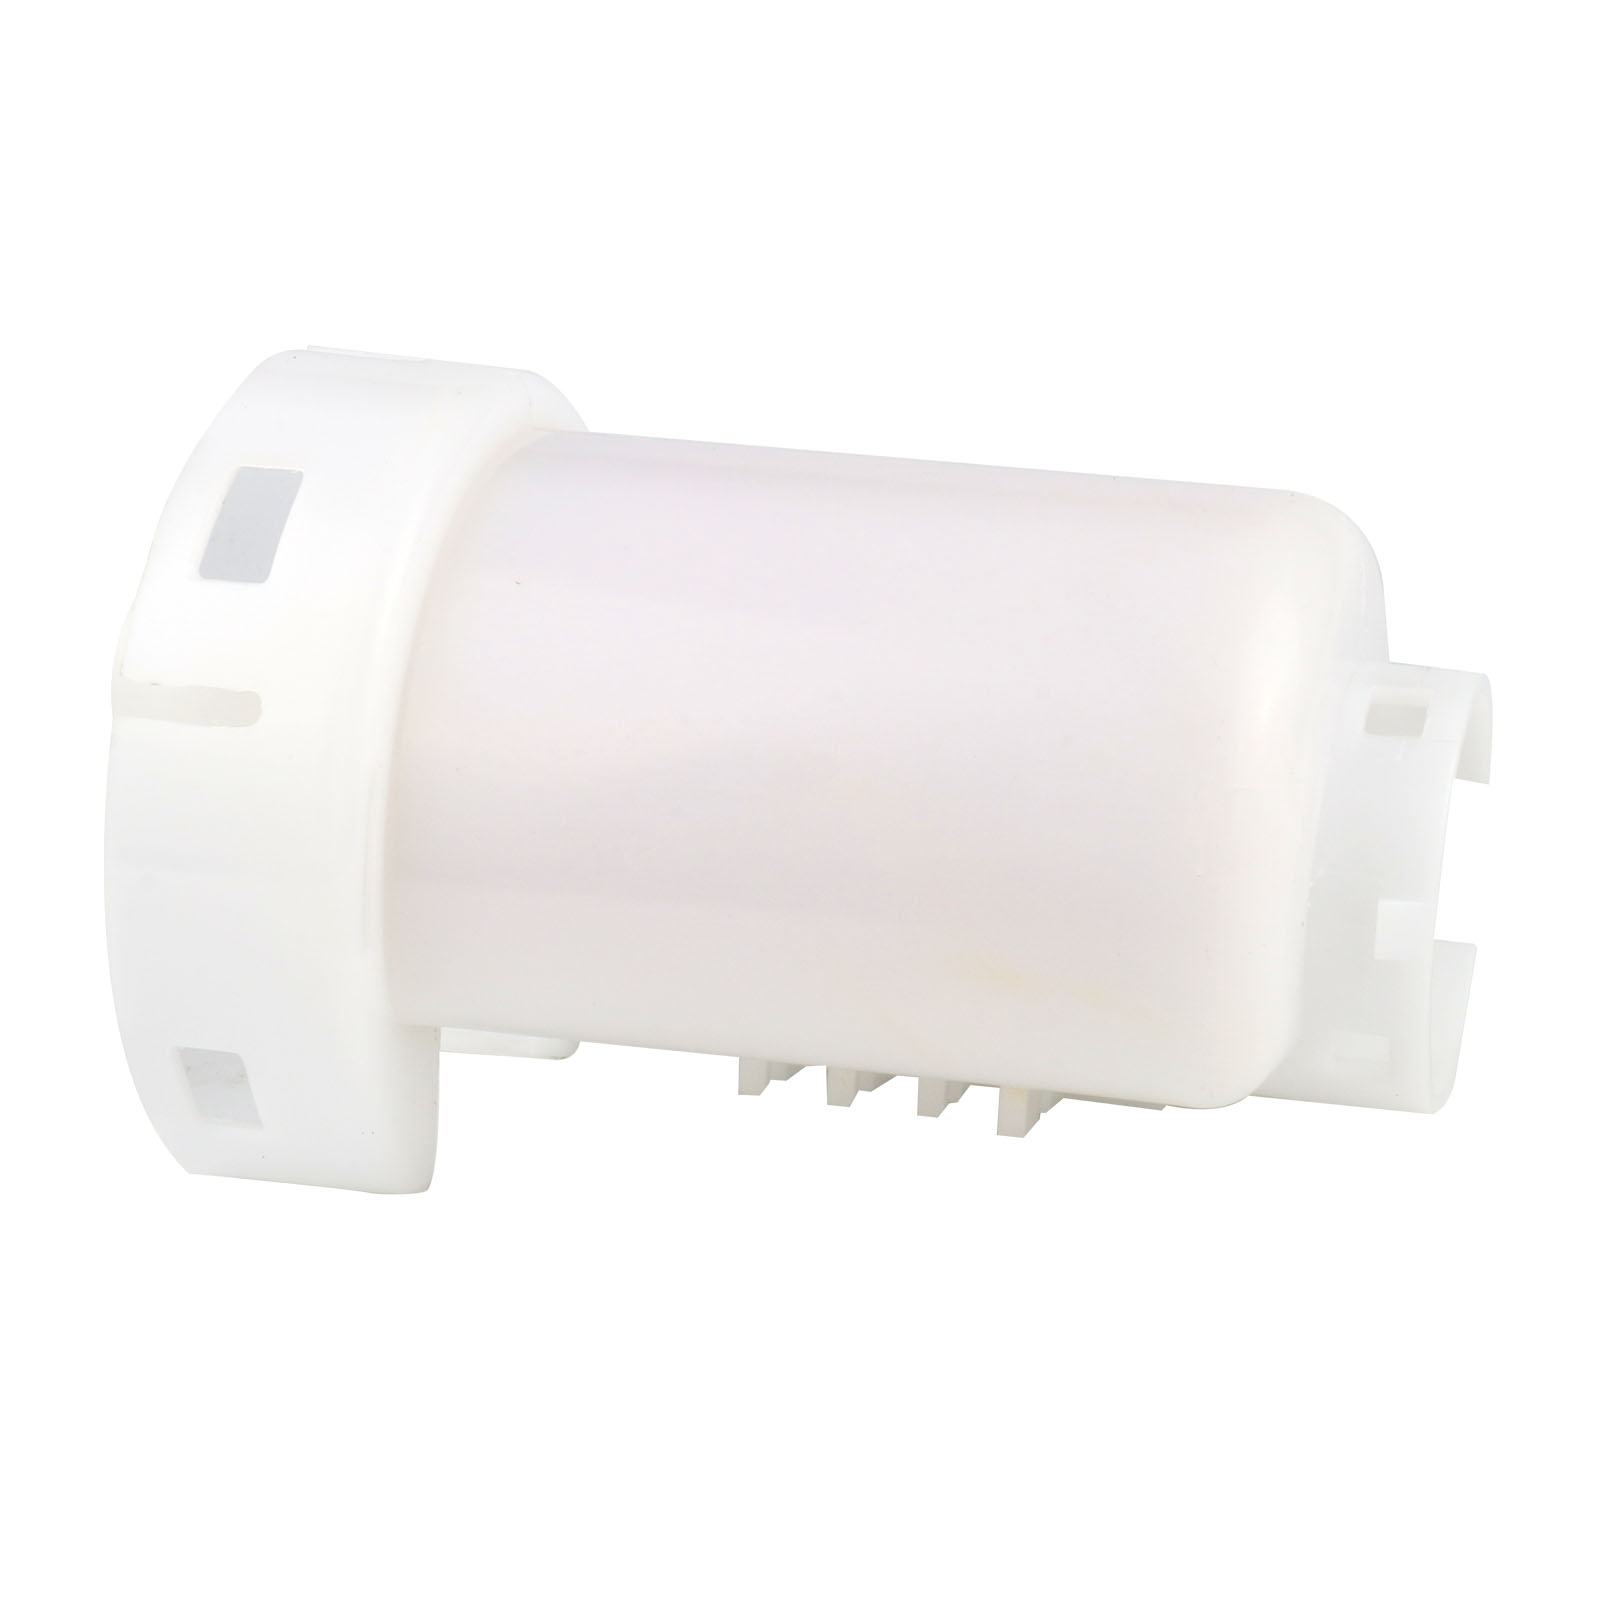 small resolution of car gas gasoline petrol fuel filter oe 23300 23040 replacement parts for toyota daihatsu charade faw